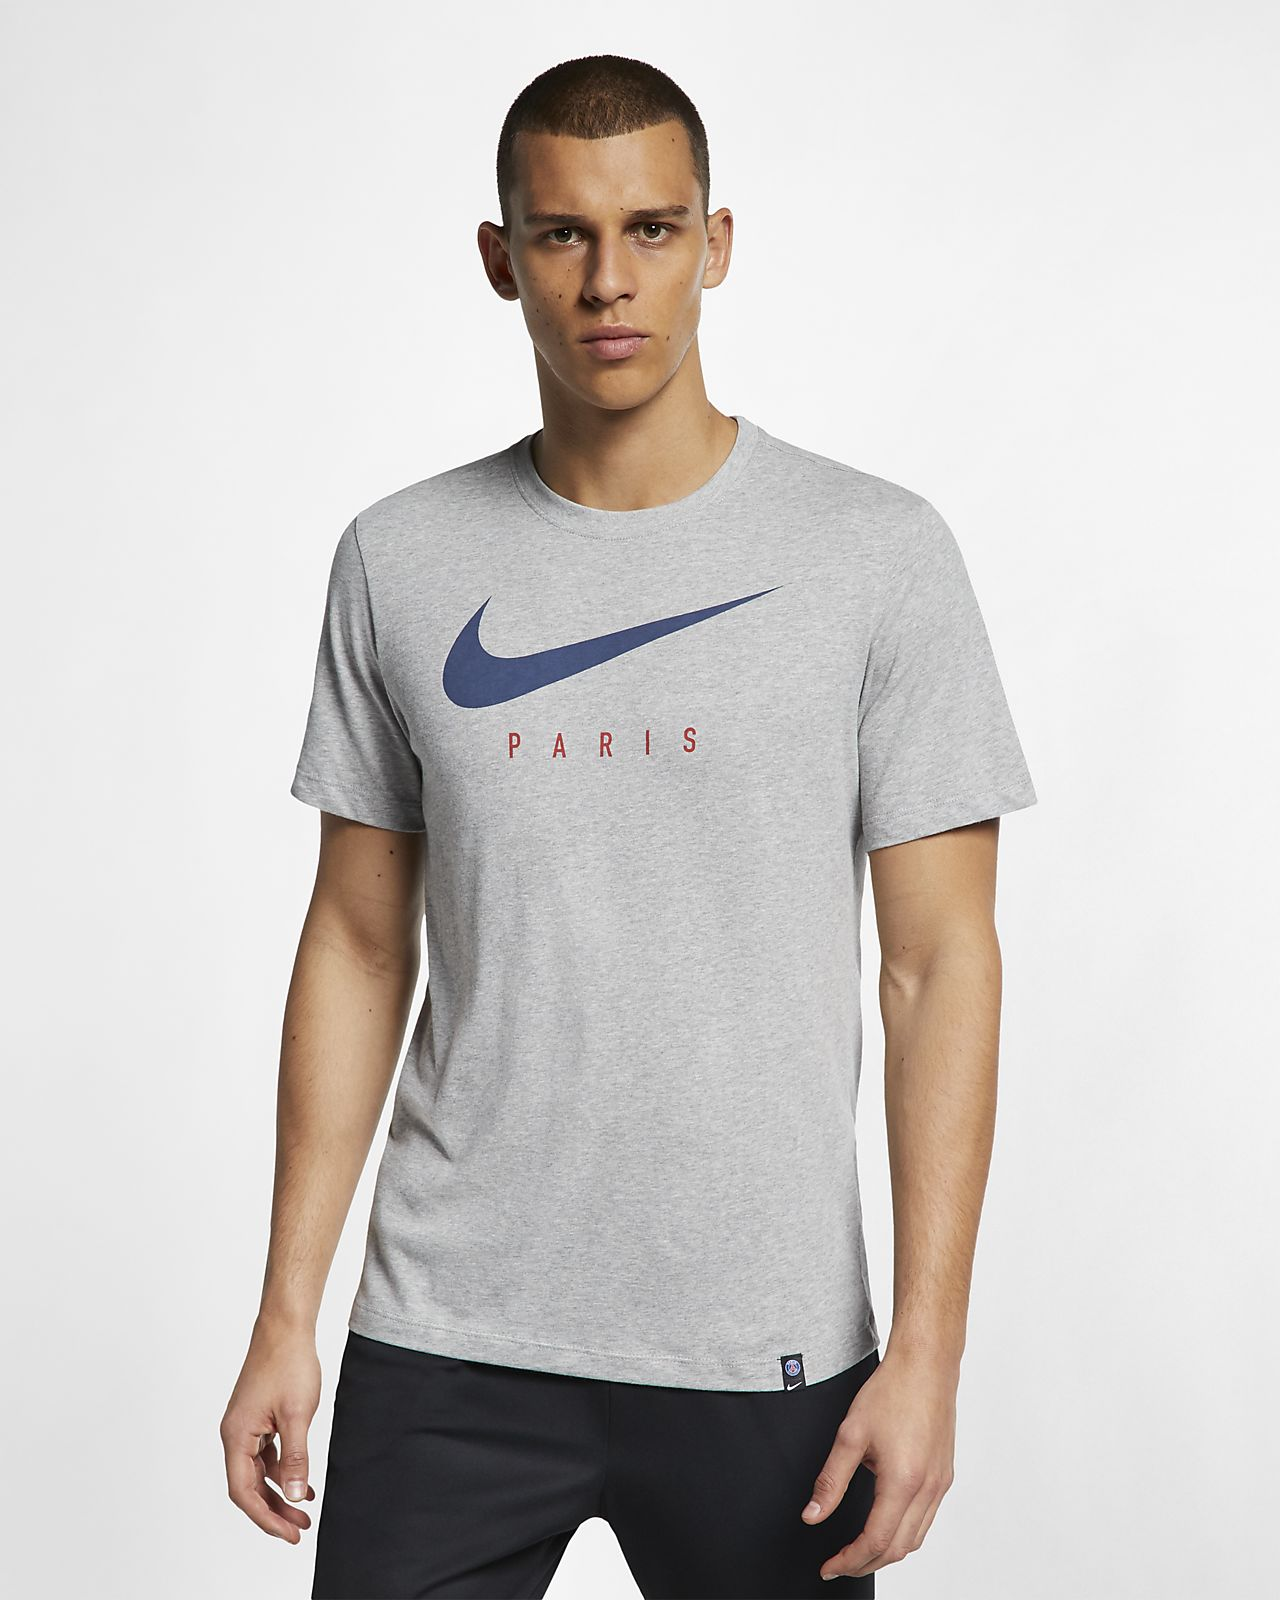 Nike Dri-FIT Paris Saint-Germain Men's Football T-Shirt